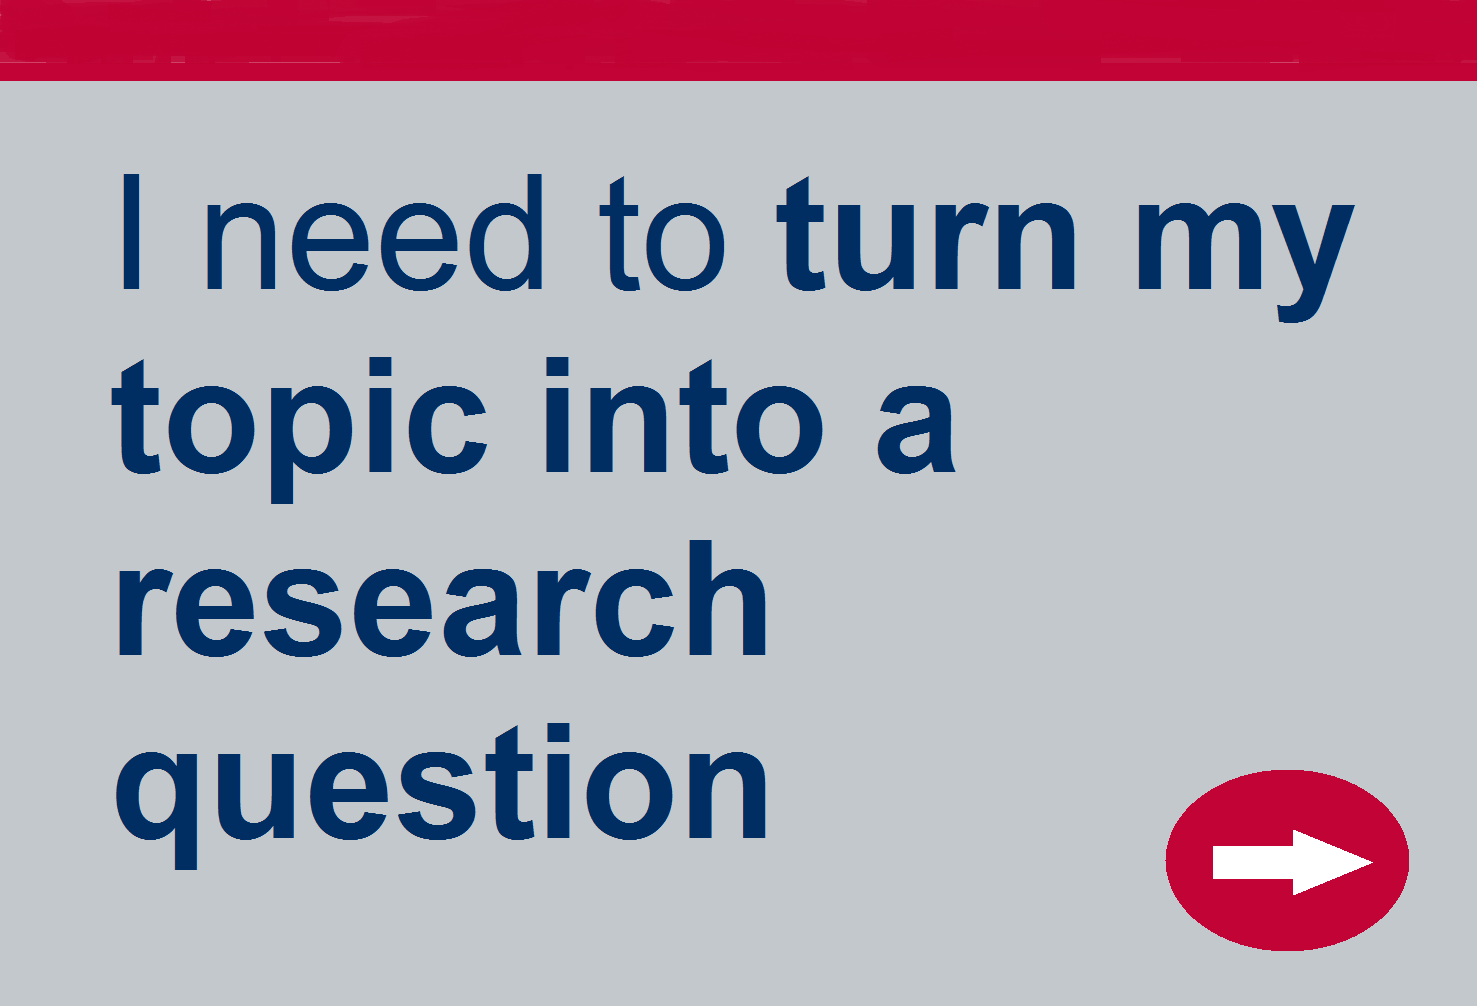 Turn my topic into a research question